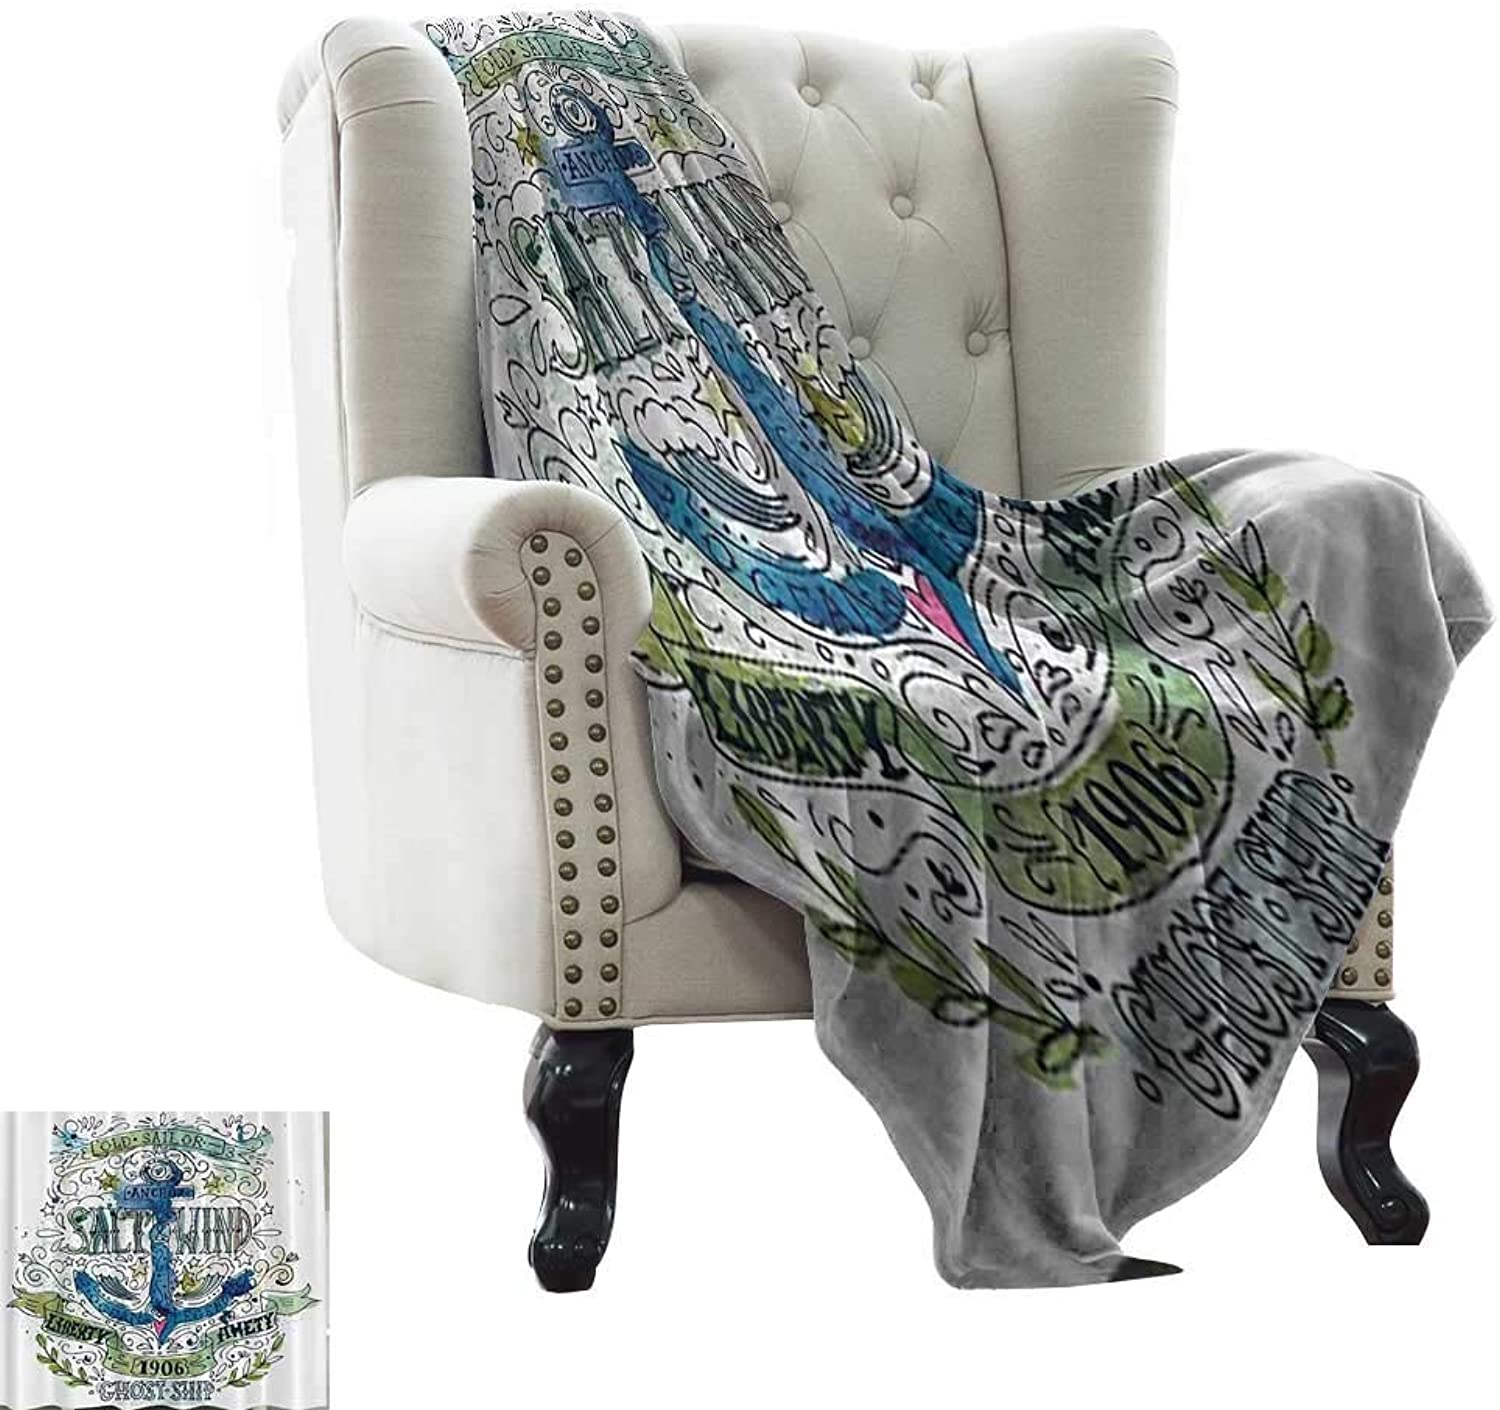 Nautical Seaside West Indies,Personalized Blankets Anchor Salt & Wind 1906 Liberty Amity Ghost Ship Old Sailor Stormy Ocean Legend Vintage 60 x50  Blanket Warm Kids Festival Gift Navy Green White